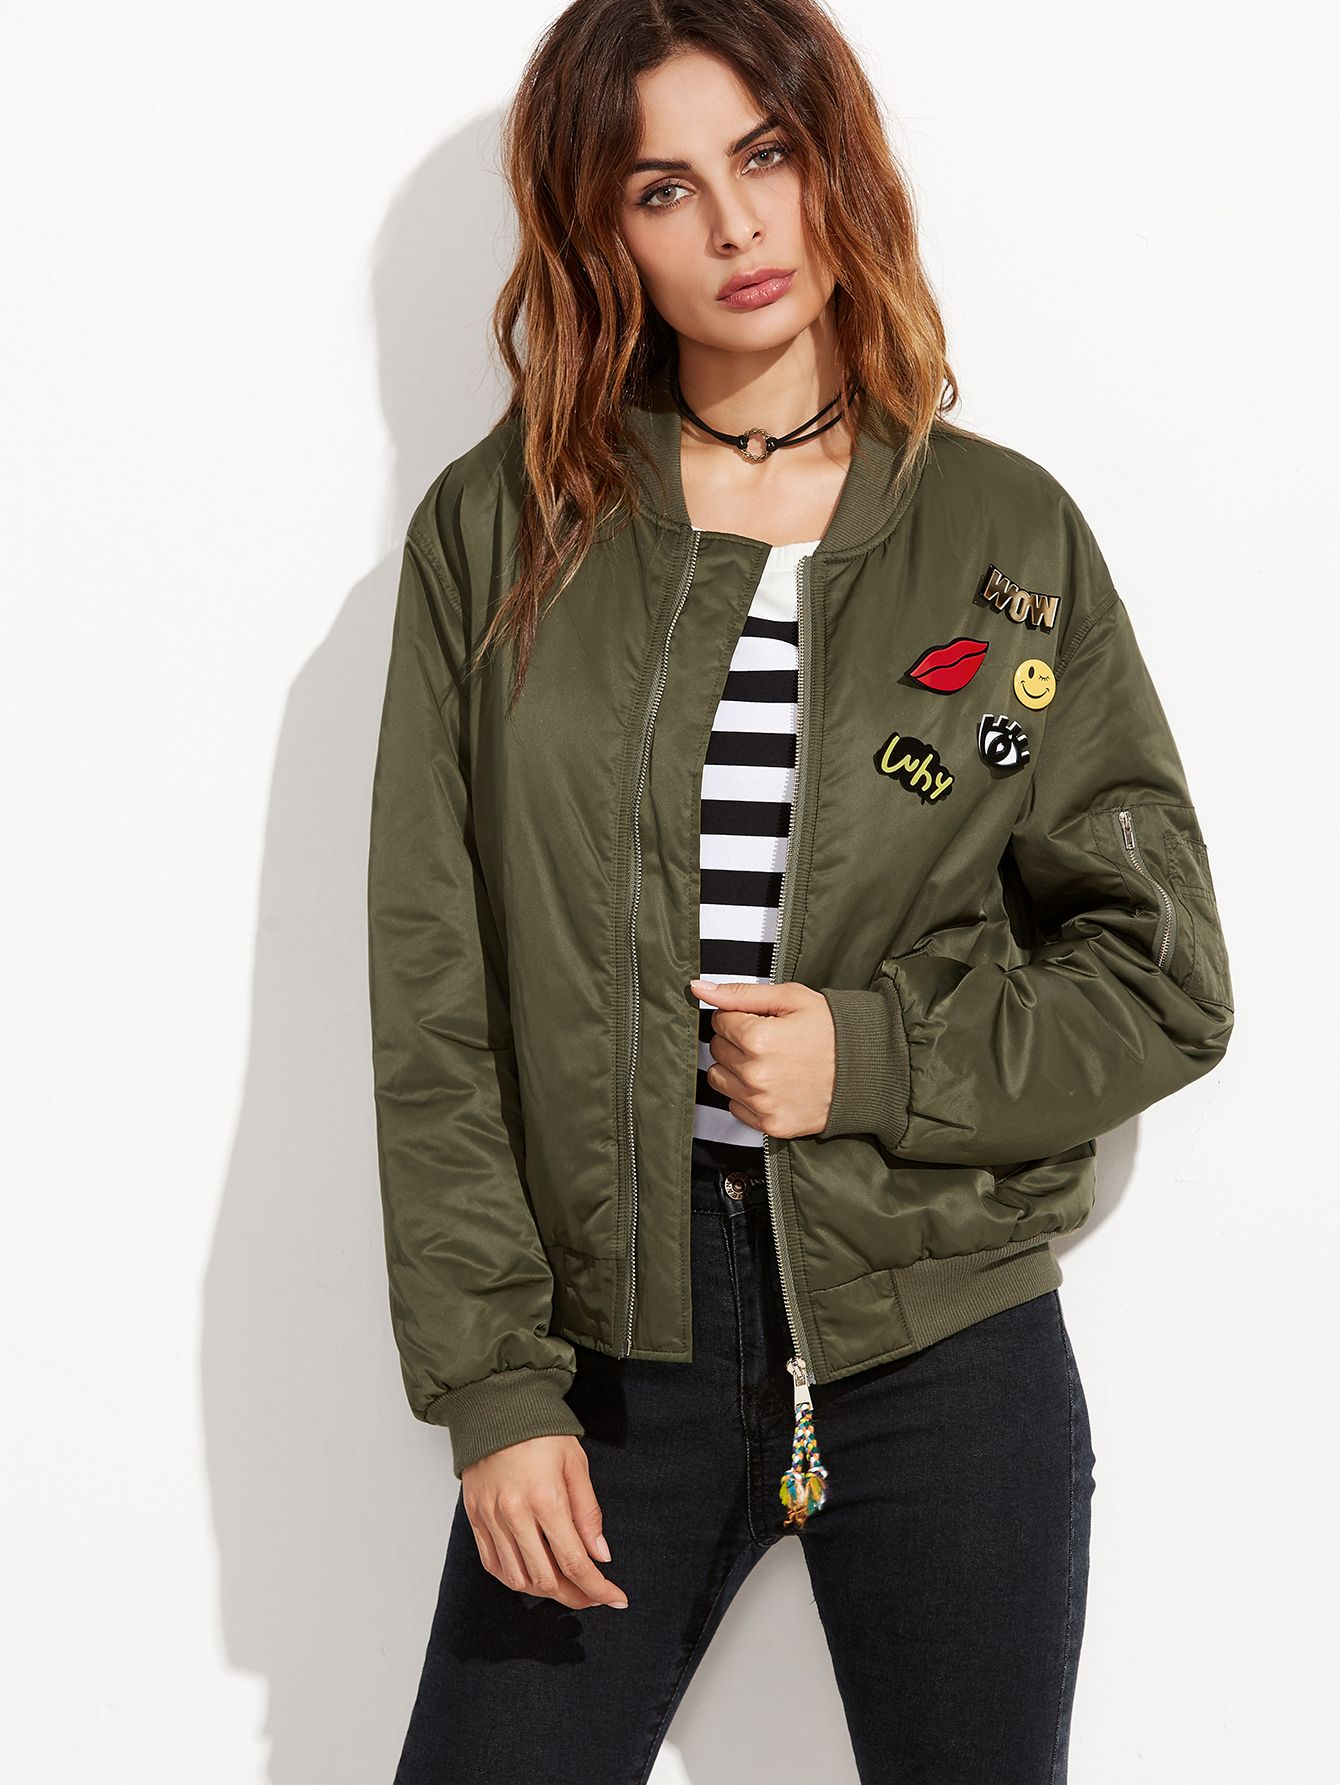 4e18916cbc789b Shop Olive Green Ribbed Trim Satin Bomber Jacket With Lovely Pins online.  SheIn offers Olive Green Ribbed Trim Satin Bomber Jacket With Lovely Pins &  more ...